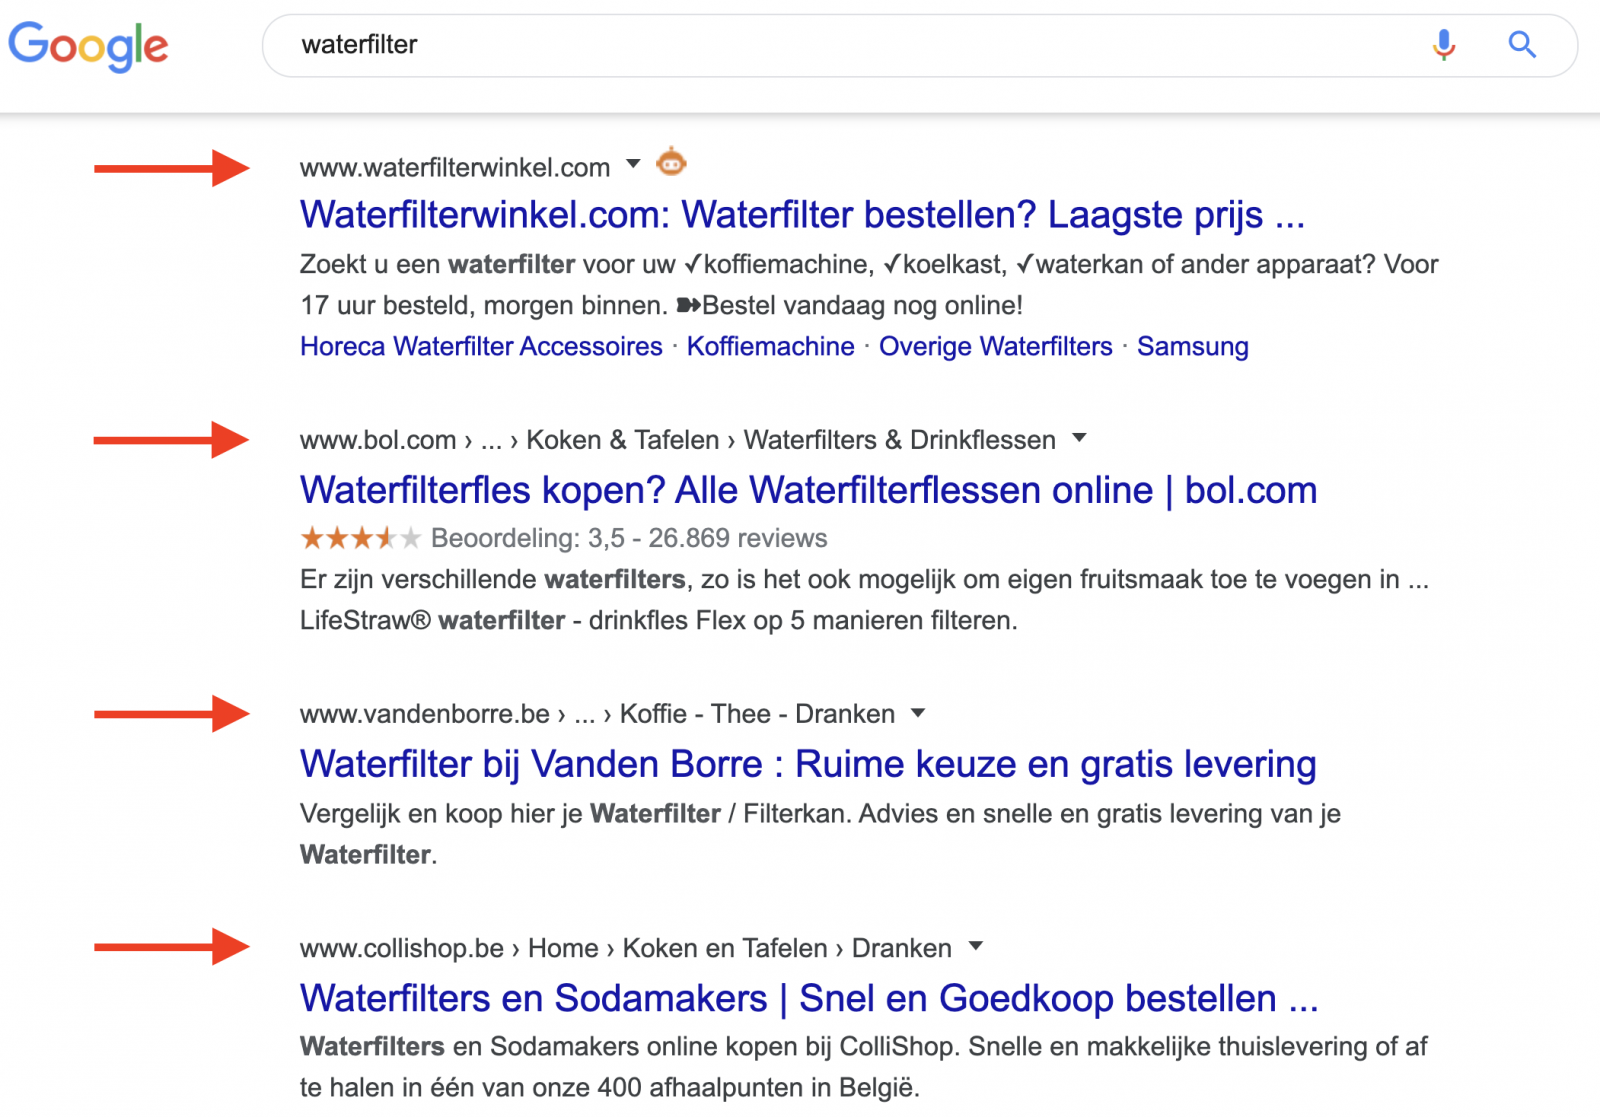 E-commerce SEO - waterfilter